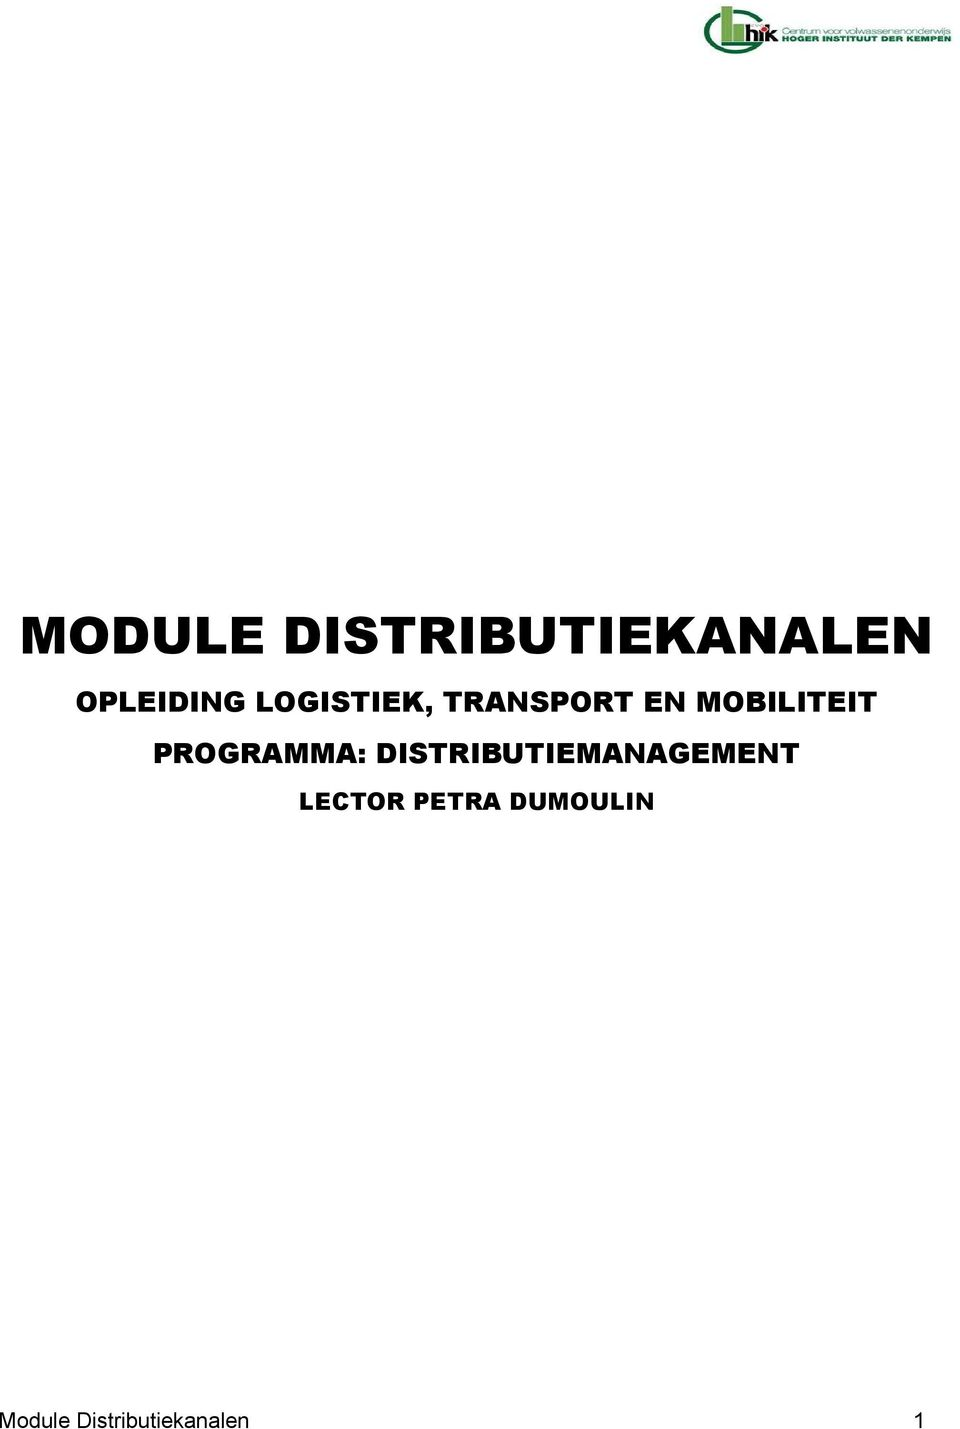 PROGRAMMA: DISTRIBUTIEMANAGEMENT